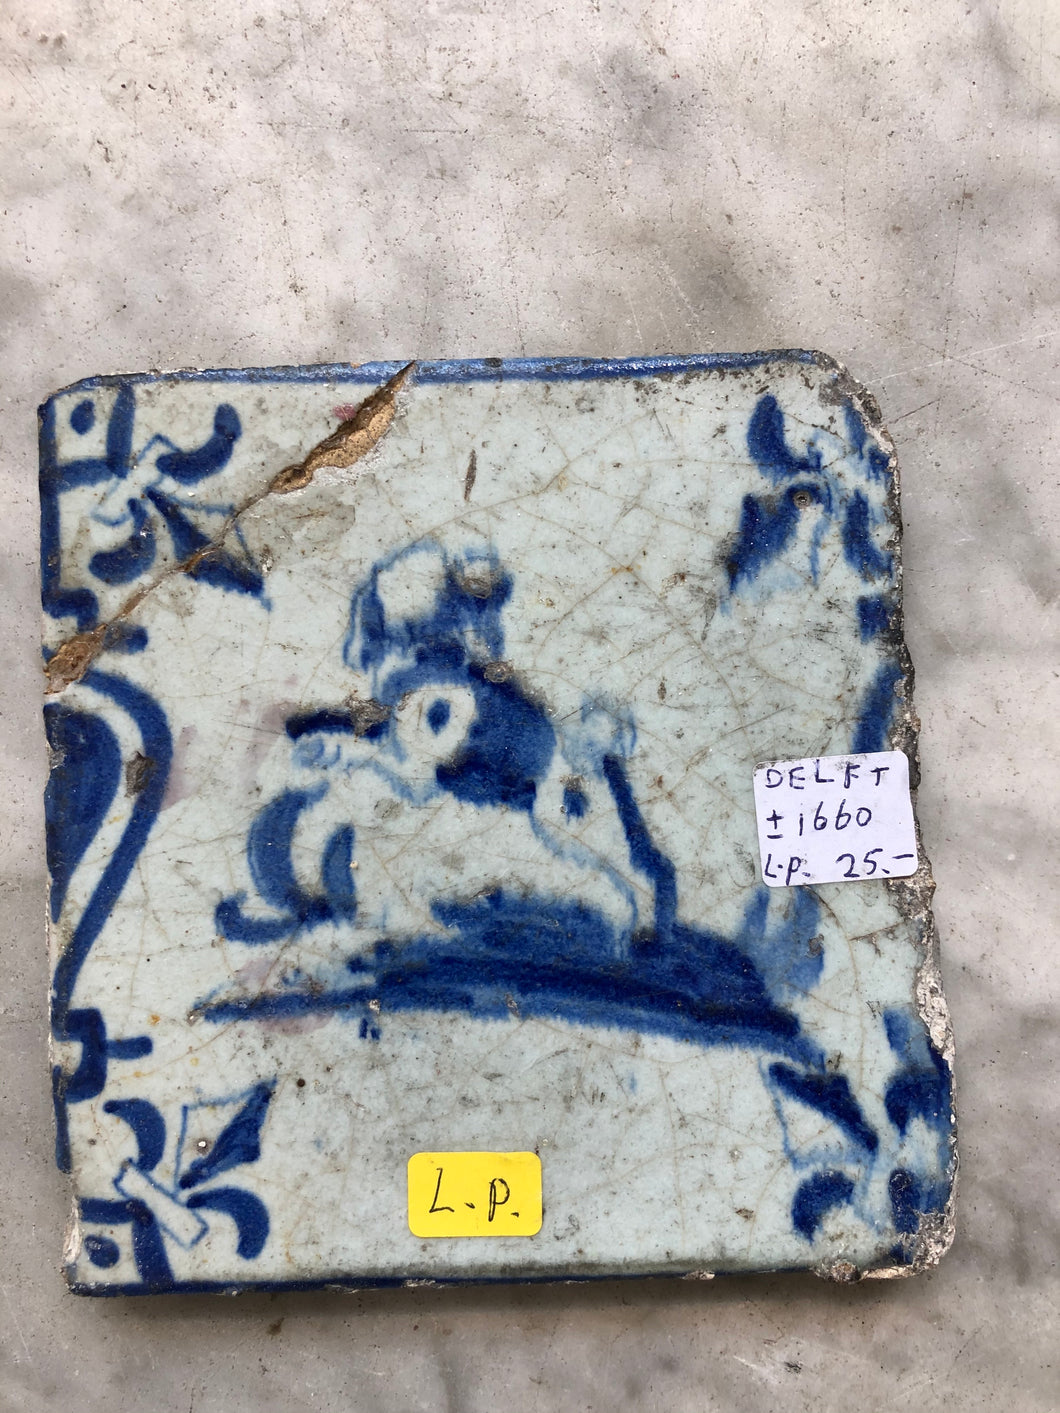 17 th century delft tile with dog